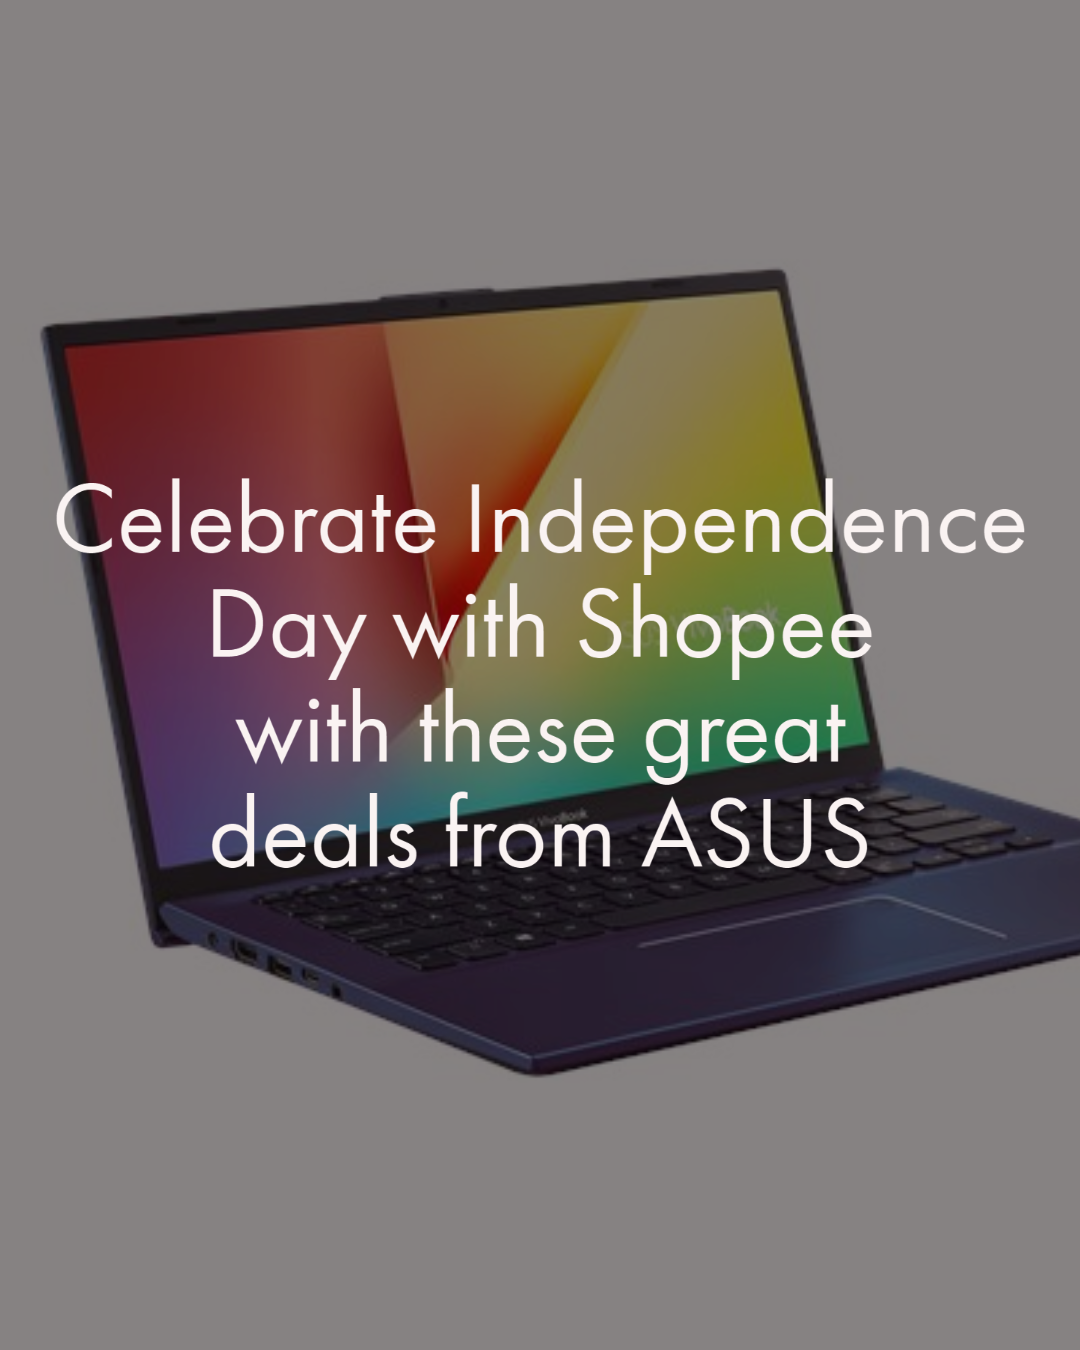 Celebrate Independence Day with Shopee with these great deals from ASUS